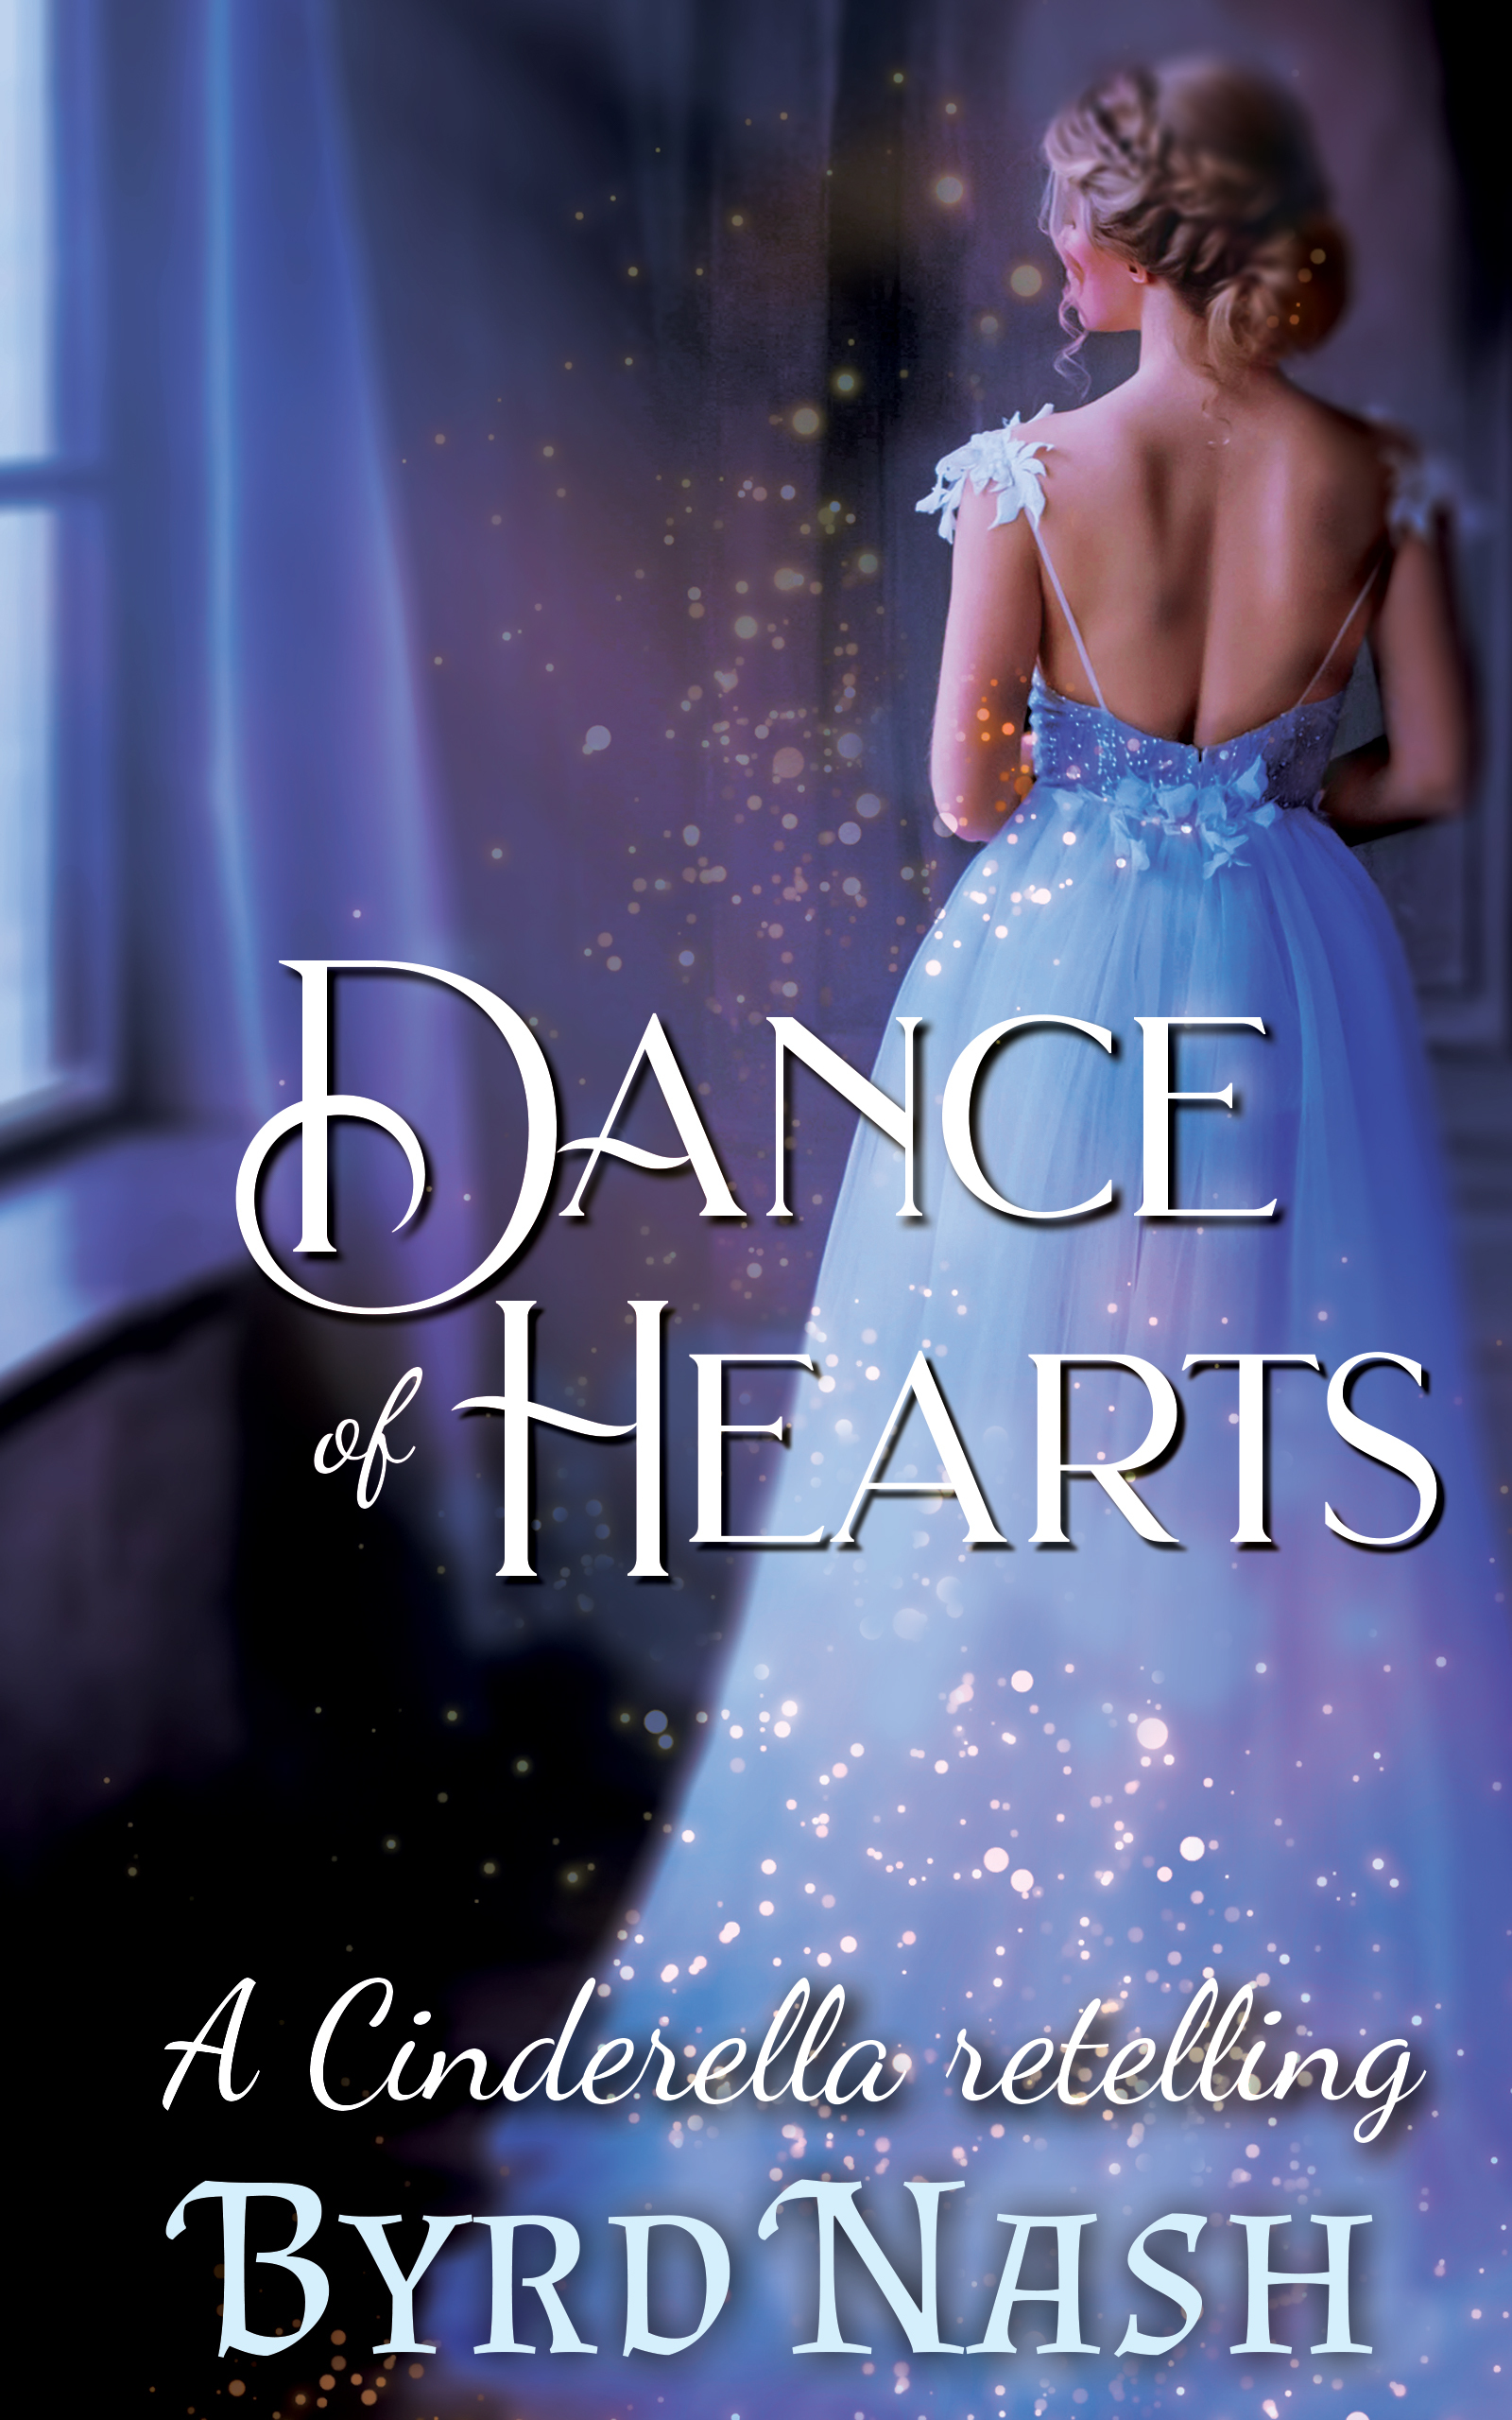 Dance of Hearts: a Cinderella Regency Romance Retelling (Historical Fantasy Fairytale Retellings Book 1)